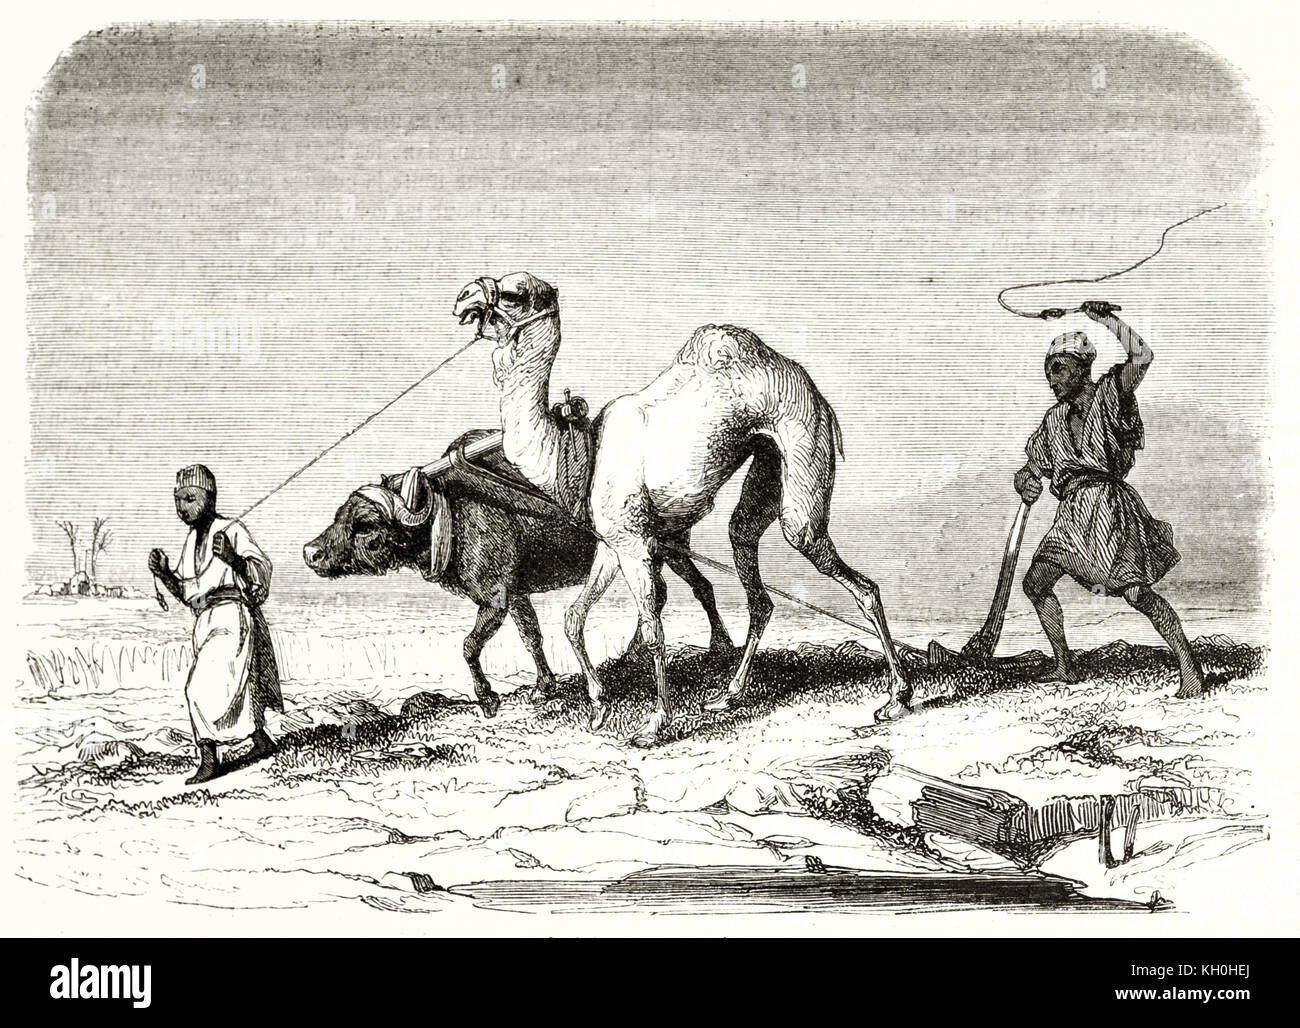 Old illustration depicting Egyptian countrymen plowing. By Girardet, publ. on Magasin Pittoresque, Paris, 1847 - Stock Image